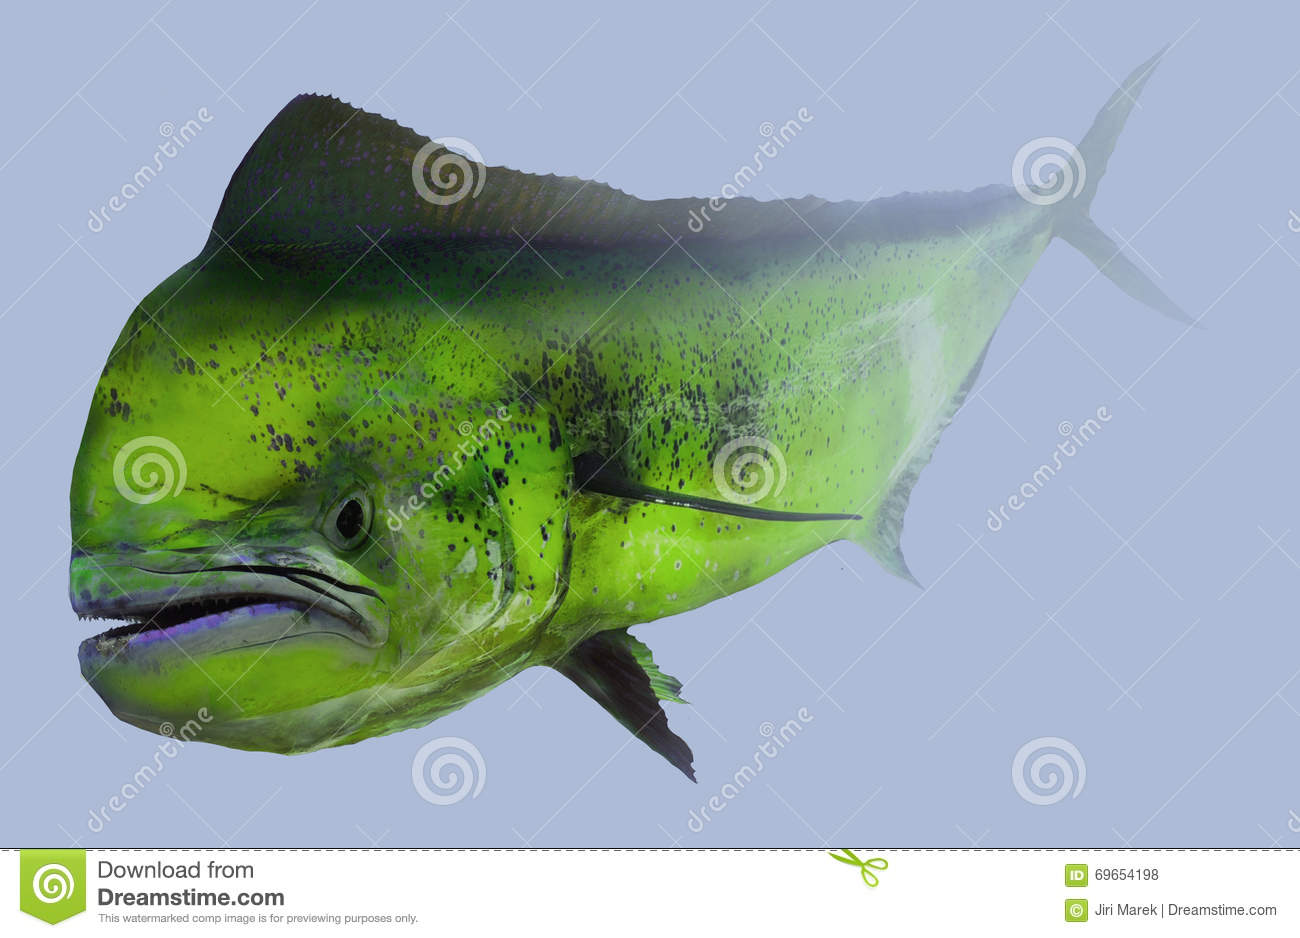 Mahi mahi dorado dolphin fishing portrait stock photo for Large ocean fish